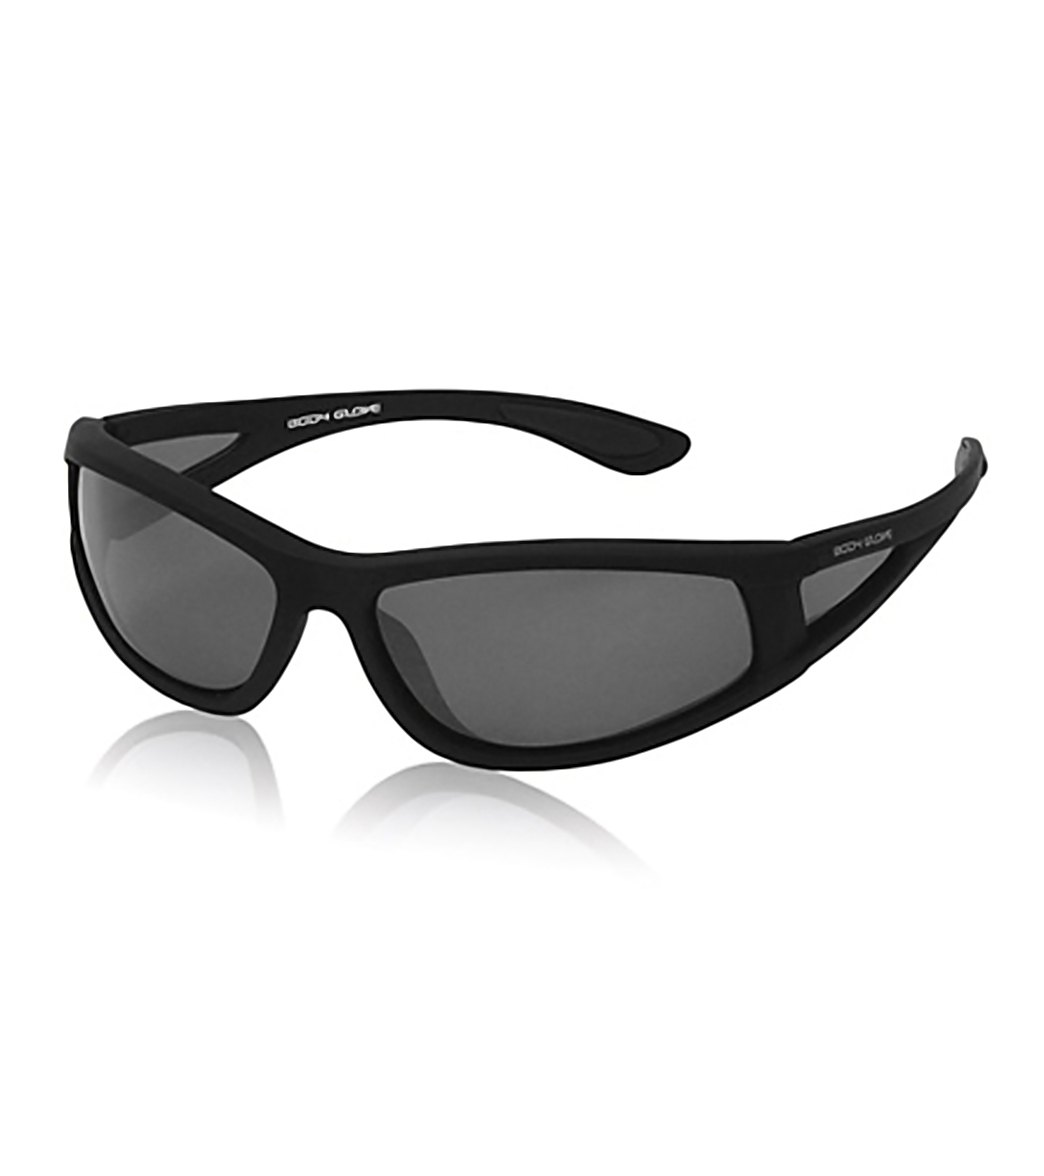 Body Glove Sunglasses  body glove fl1 a polarized floating sunglasses at swimoutlet com